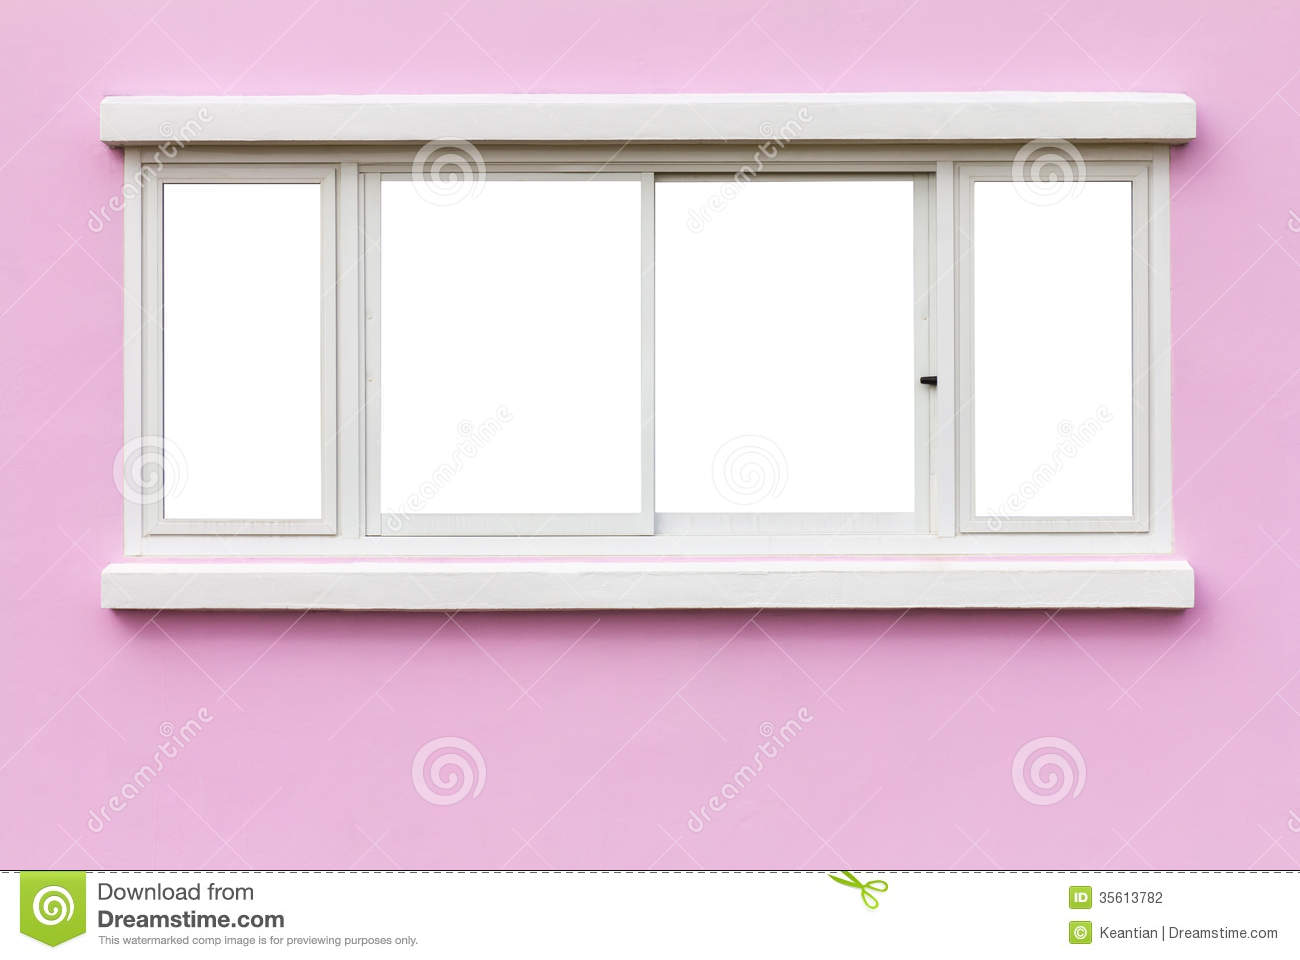 Window frame wall pink stock photo. Image of grunge, concrete - 35613782